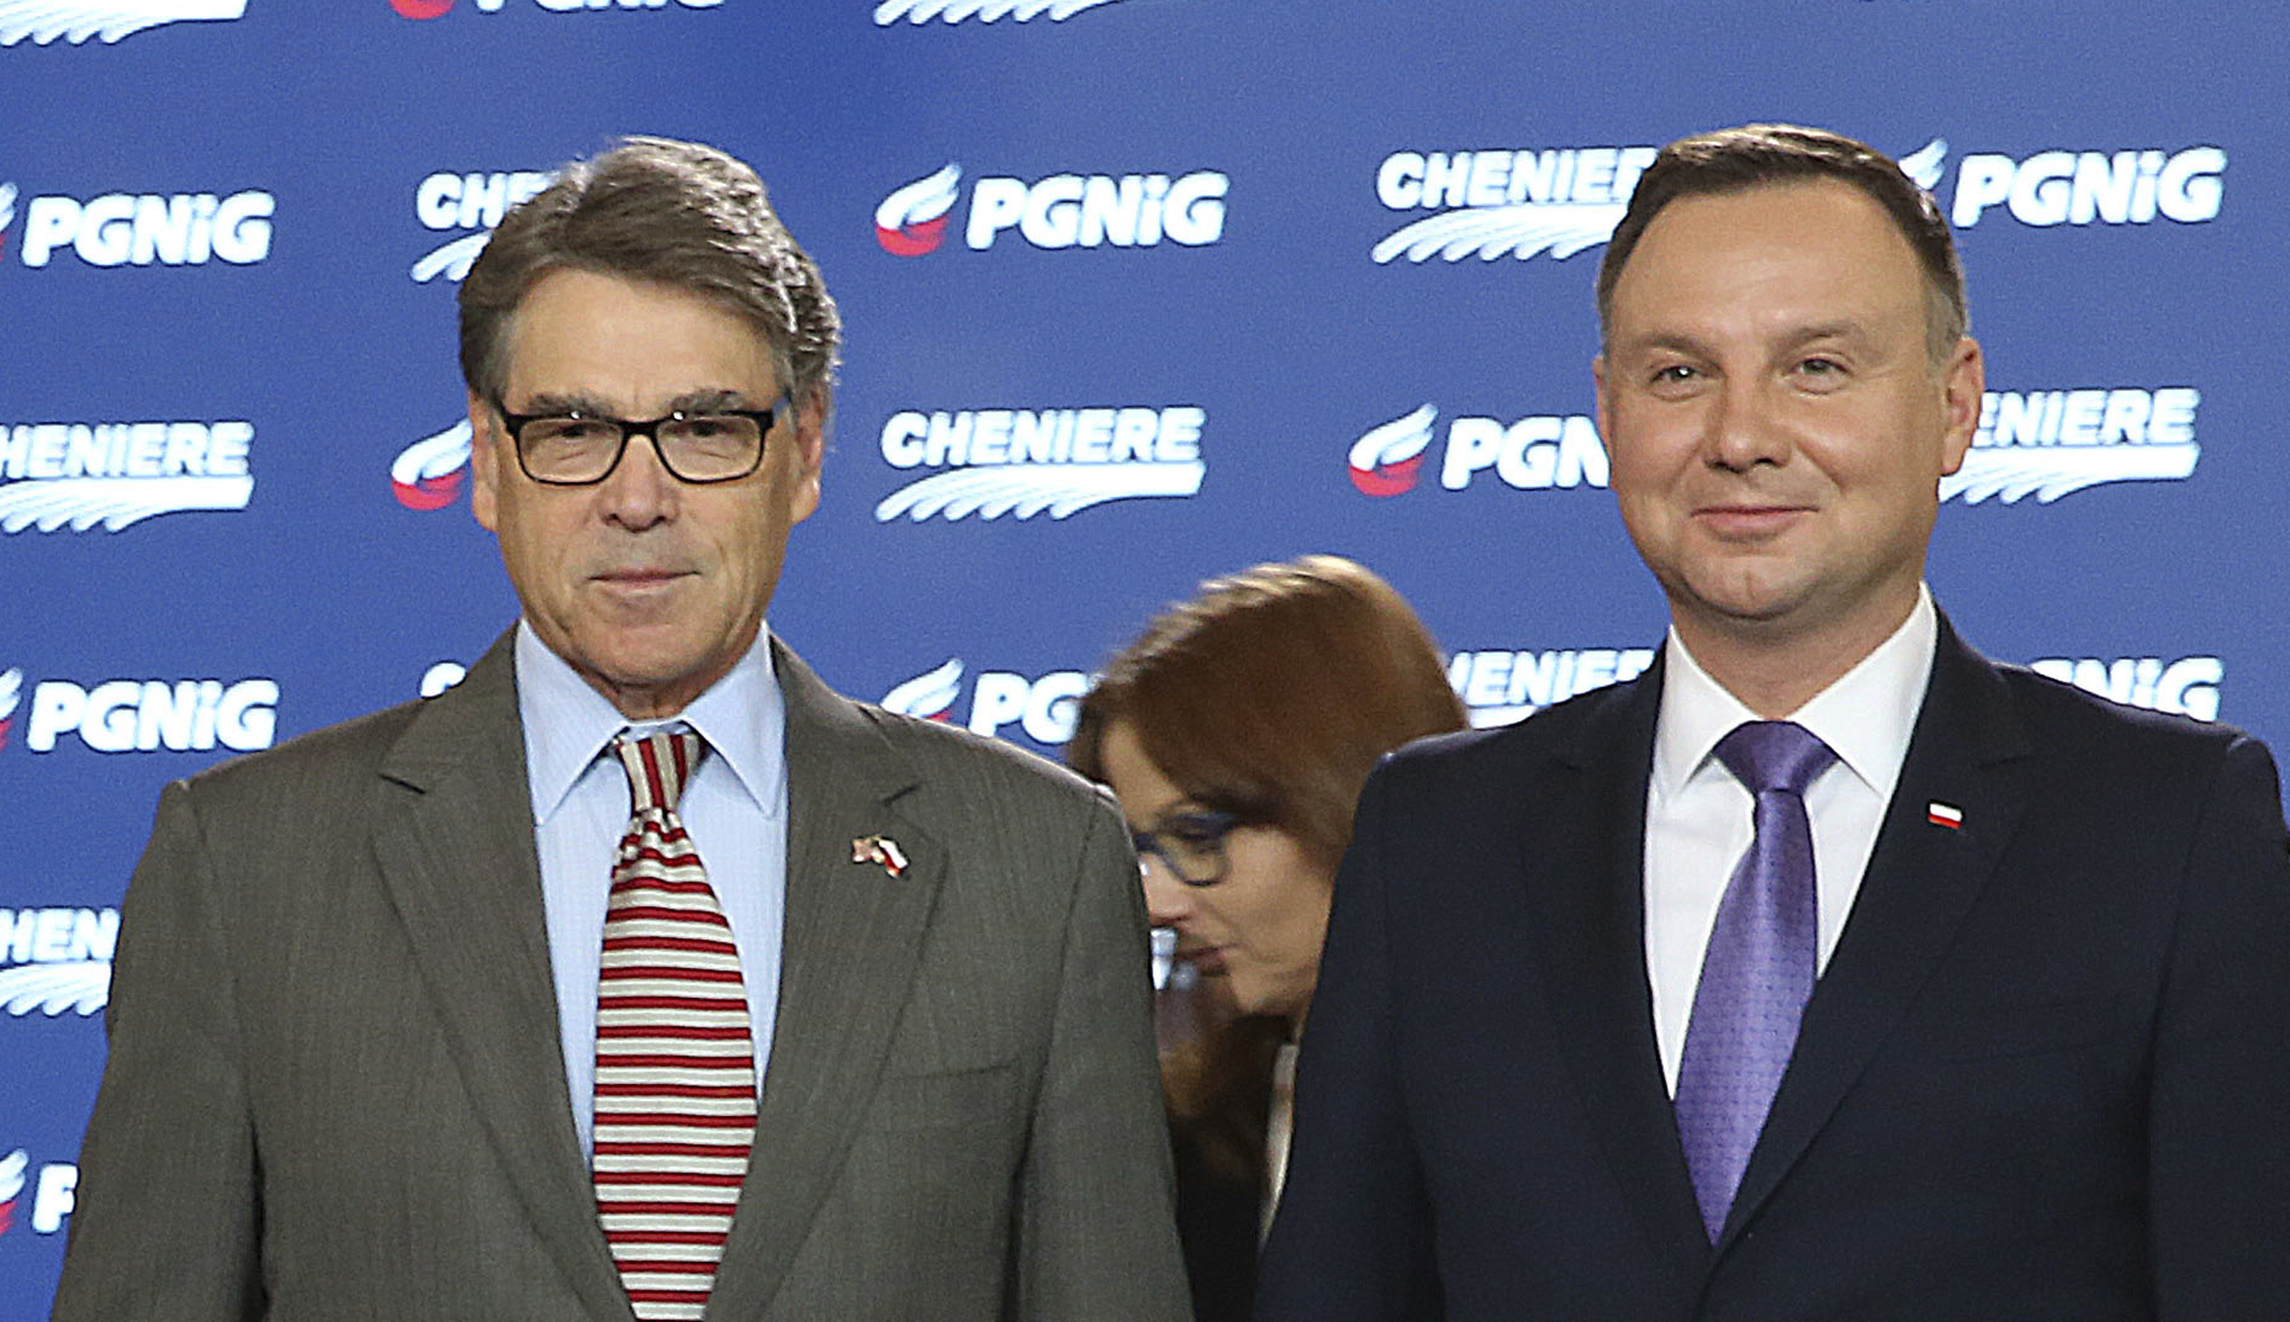 washingtonexaminer.com - Poland inks huge natural gas deal with US, becoming less reliant on Russia